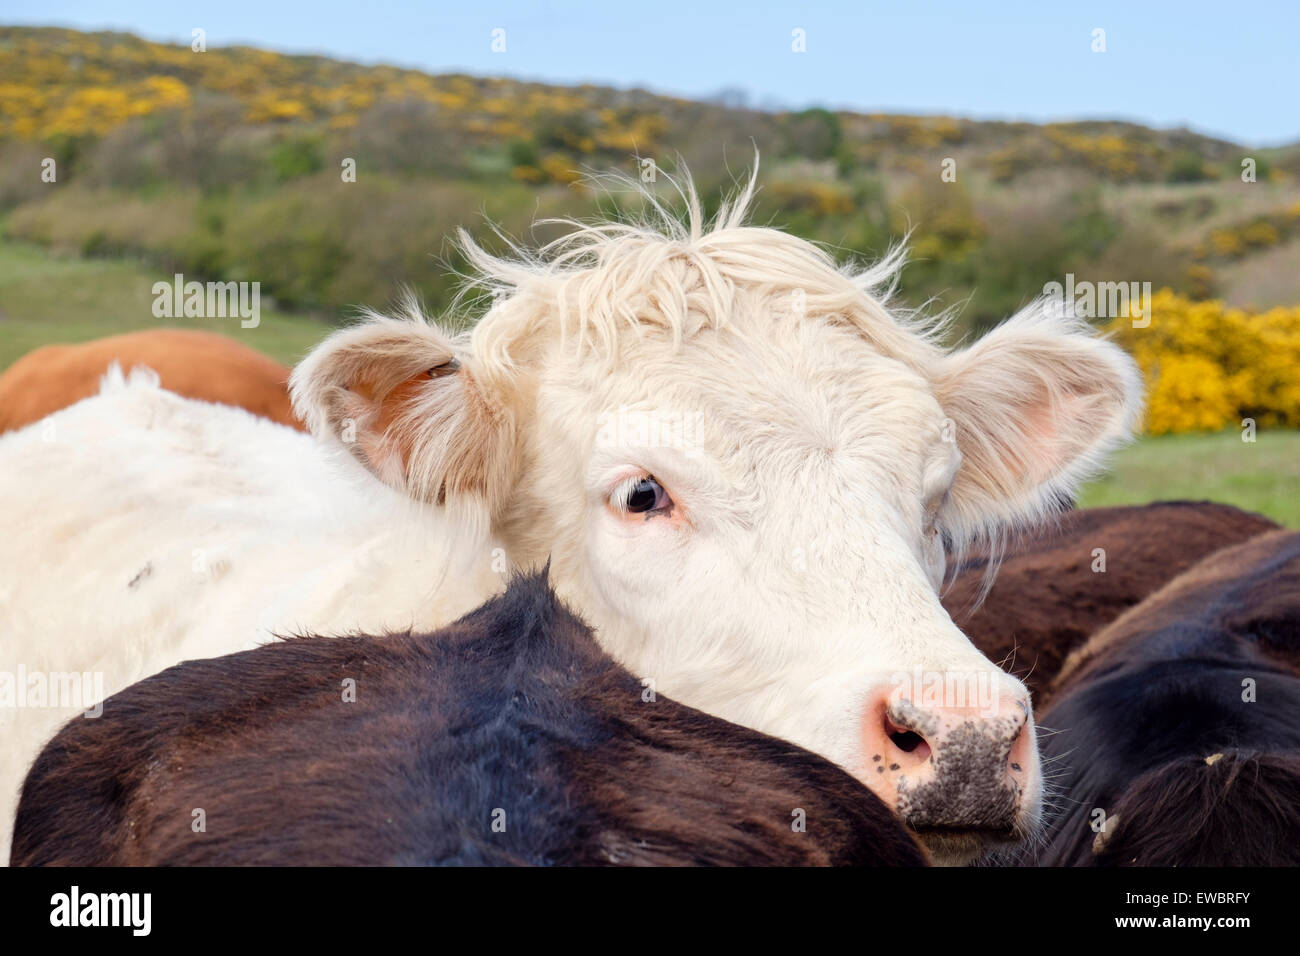 Inquisitive young white bull Bos taurus (cattle) outside on a farm. UK, Britain - Stock Image